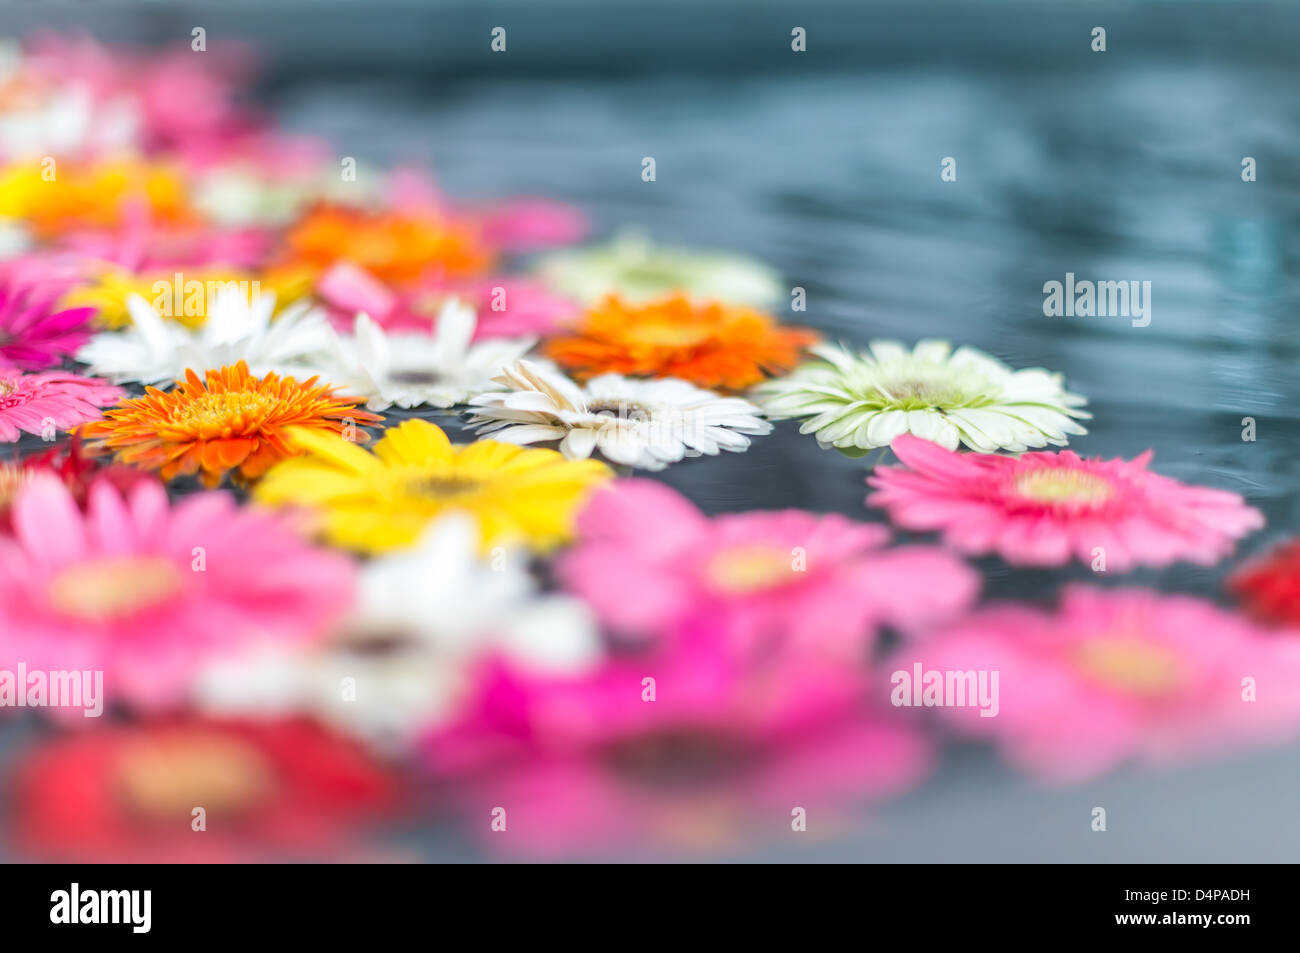 Beautiful fragile flowers of different bright colors floating in water. Floral and natural backgrounds. Mix of bright - Stock Image